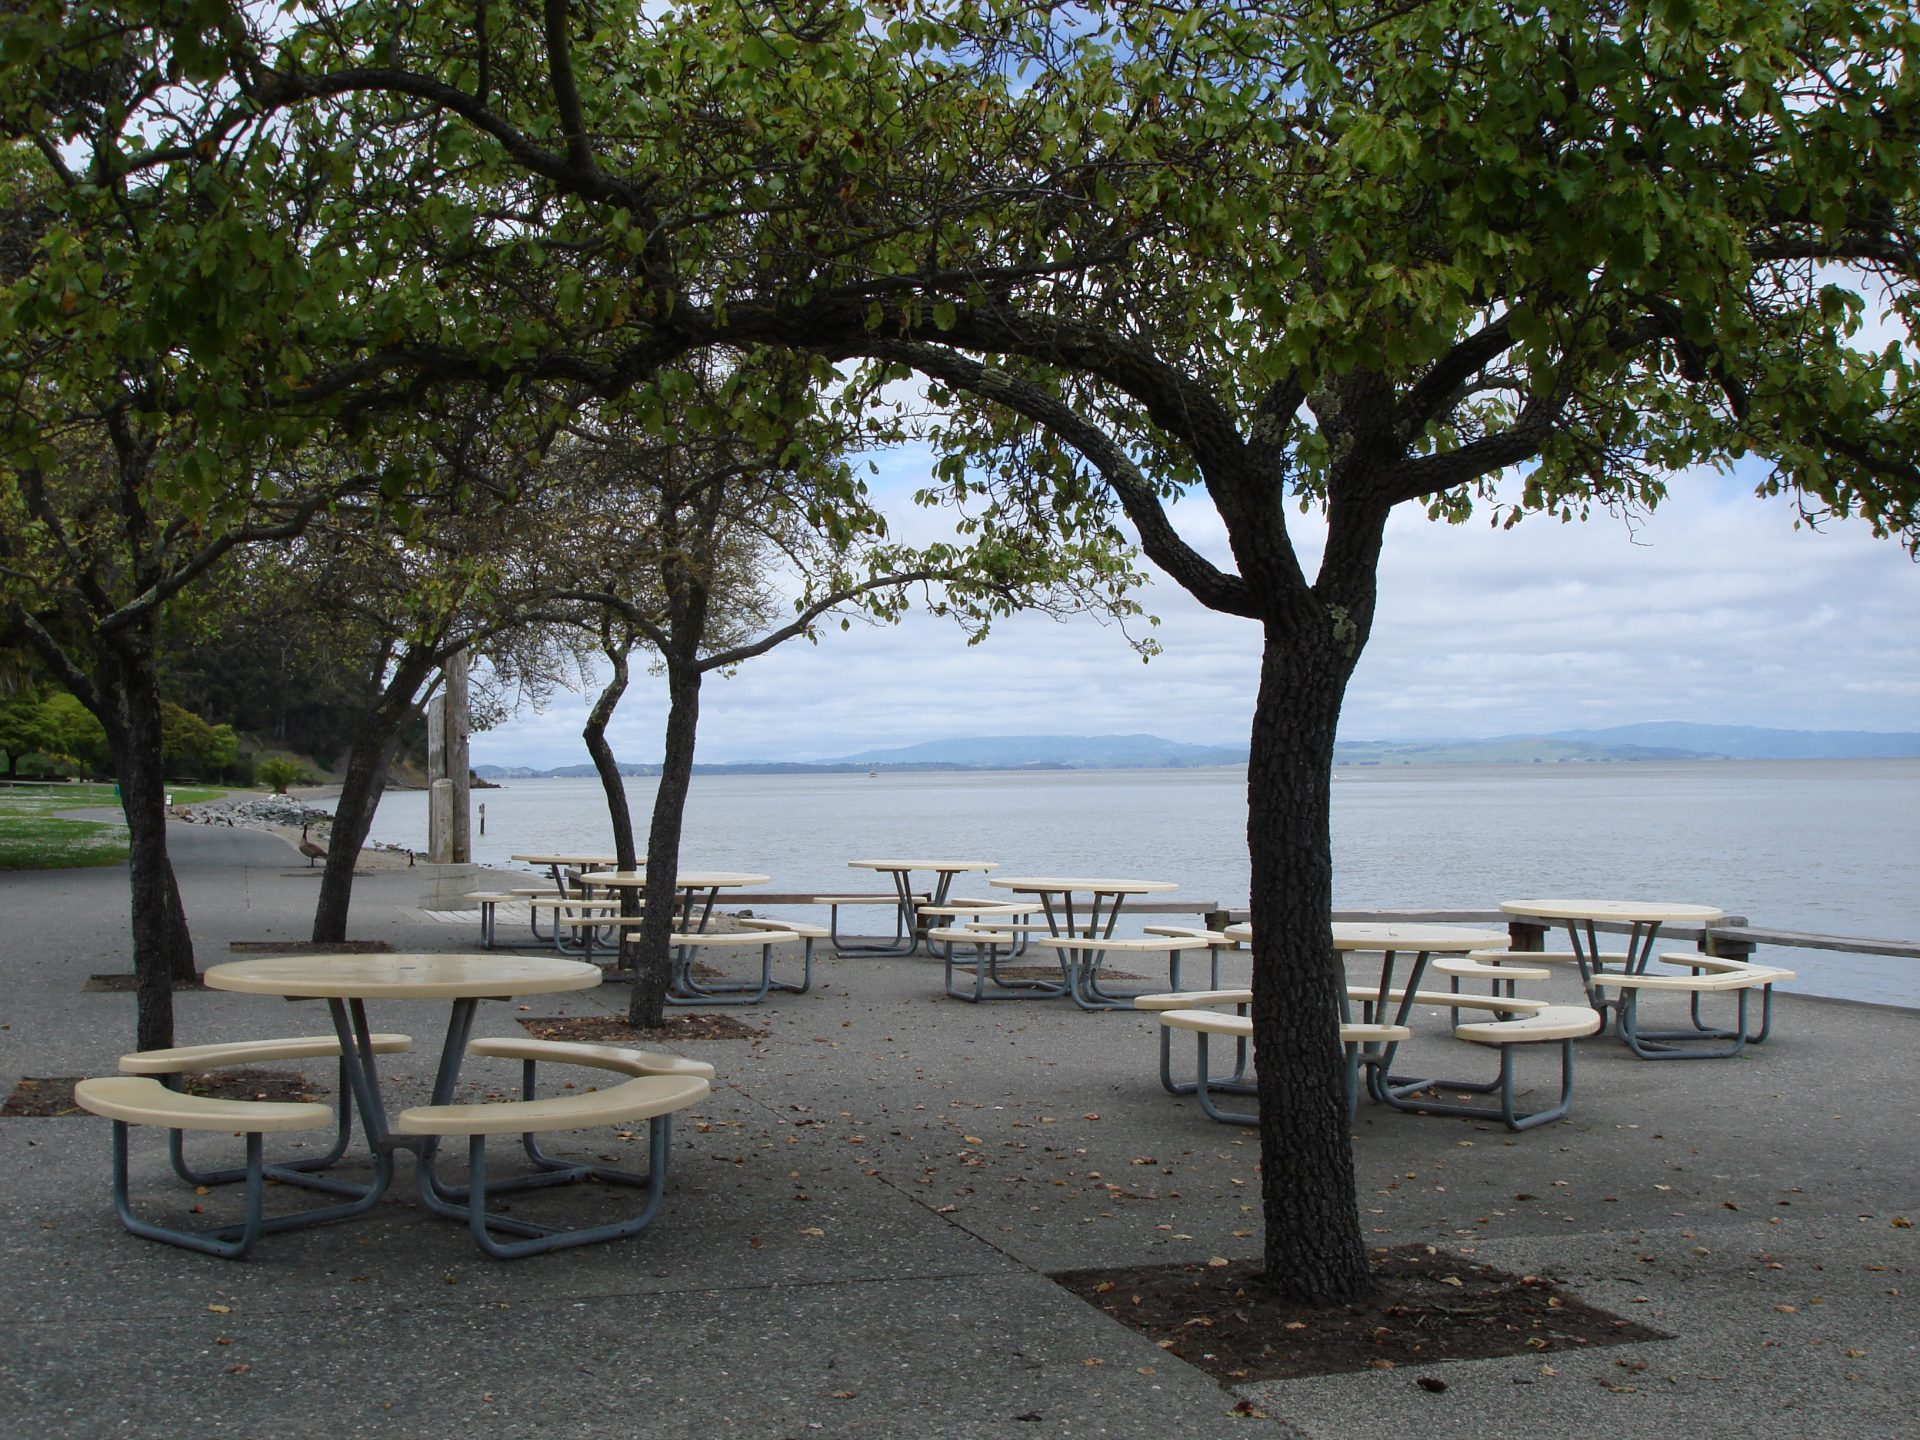 8 round picnic tables under small shade trees